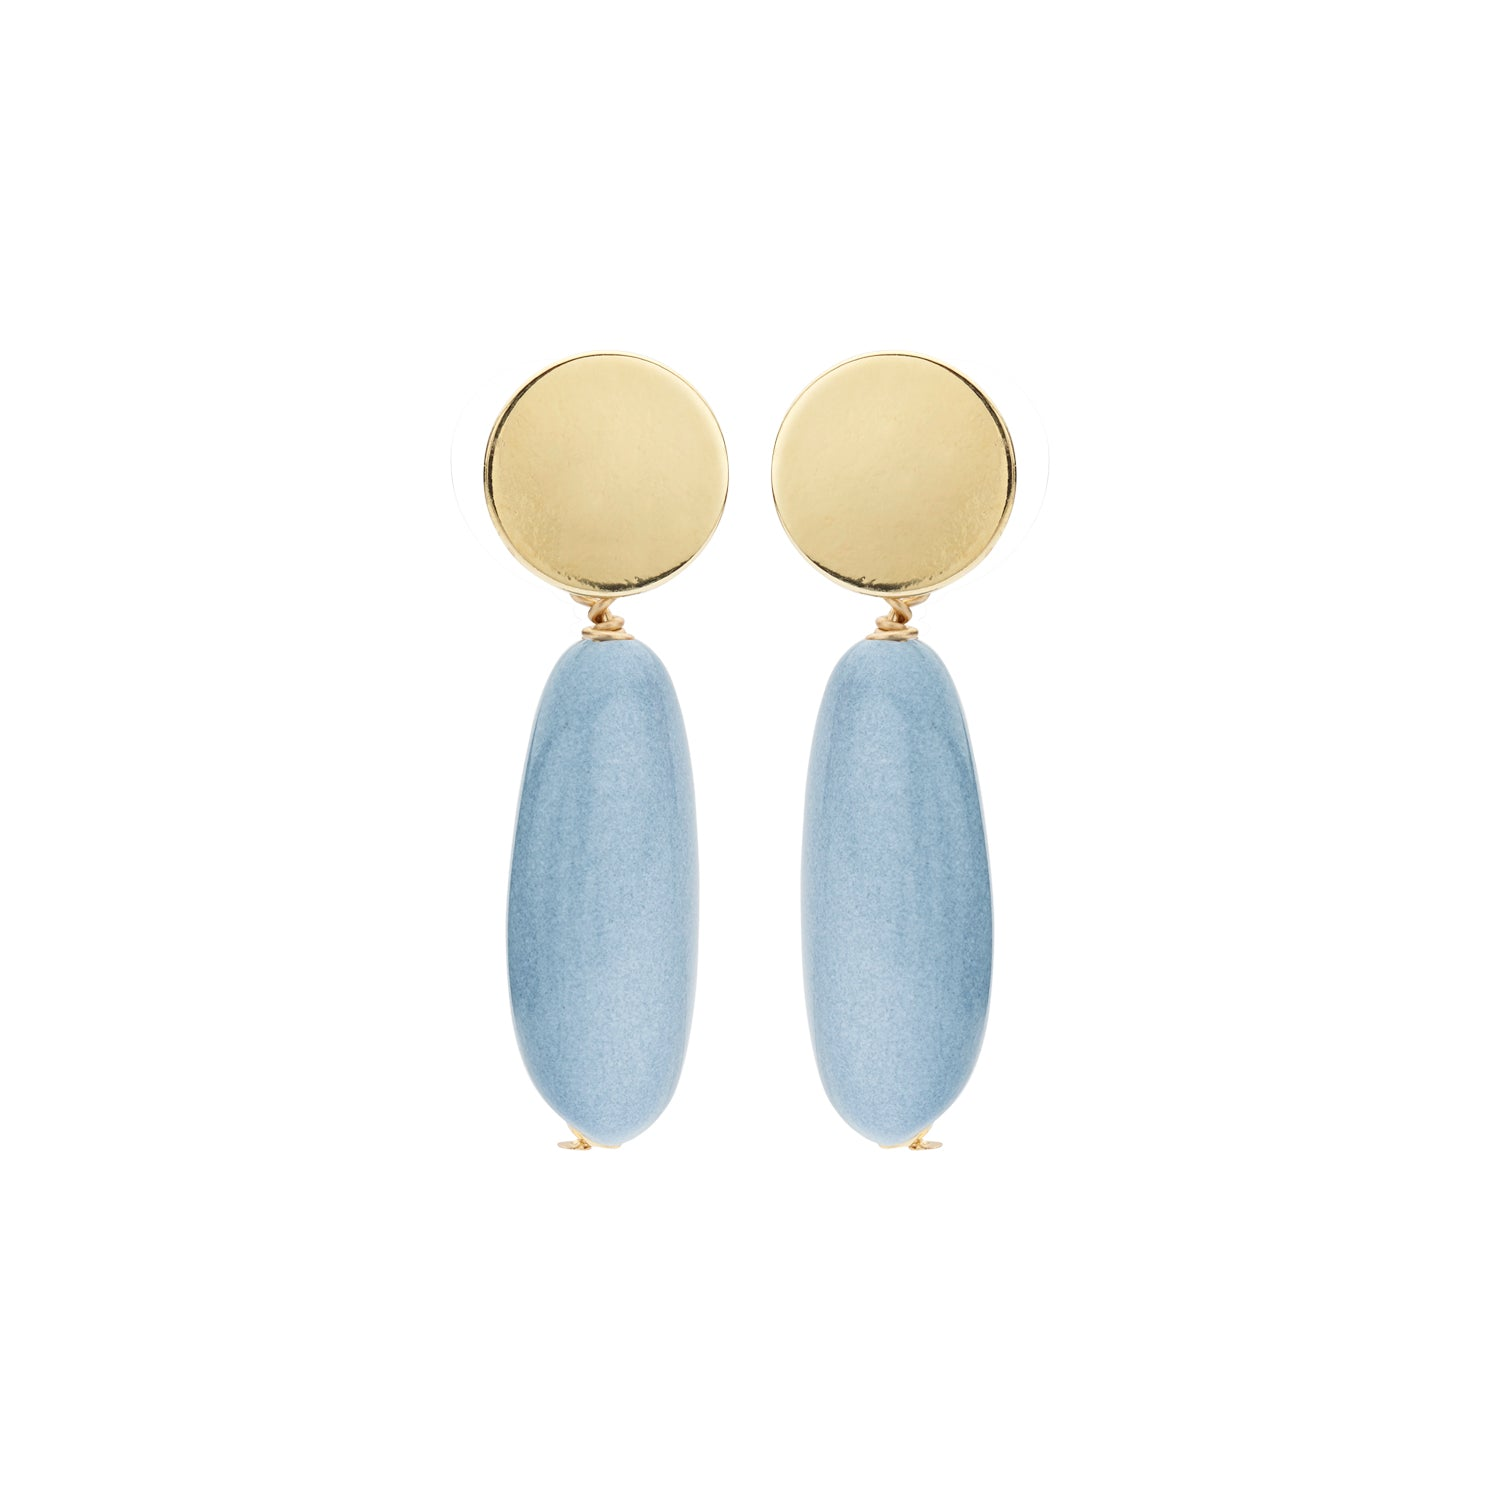 Long oval menon jeans earrings - Souvenirs de Pomme